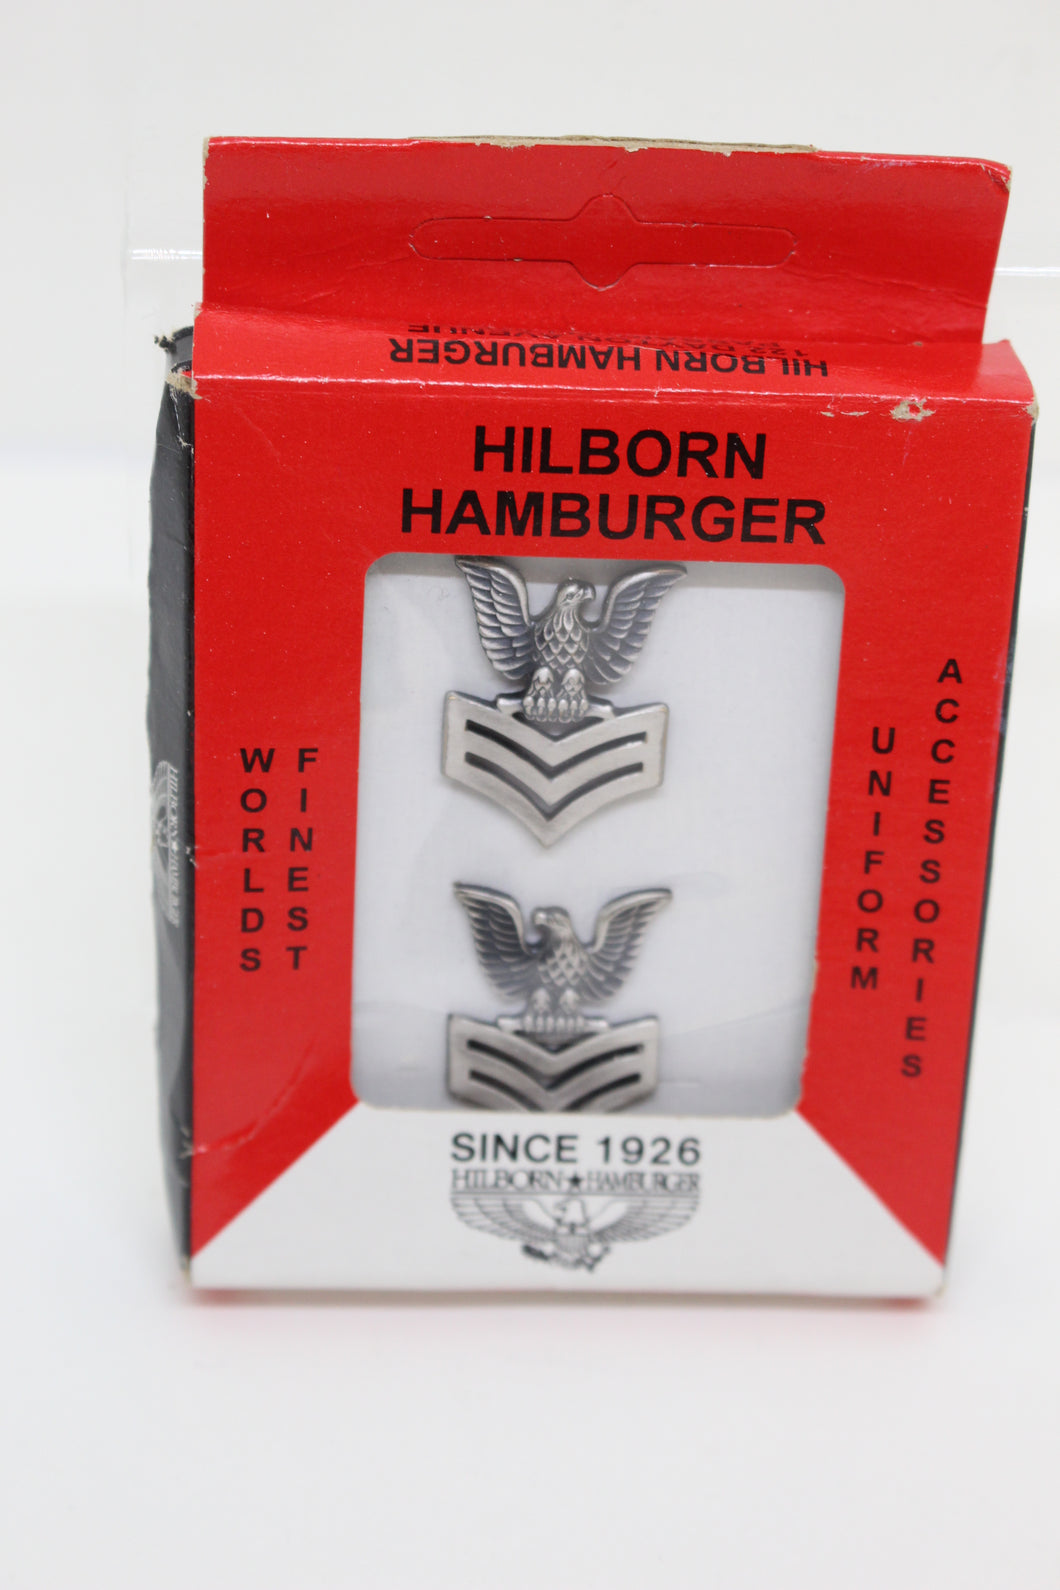 Hilborn Hamburger E-6 Petty Officer Second Class Eagle Rank Insignia Pin, Boxed Set, New!